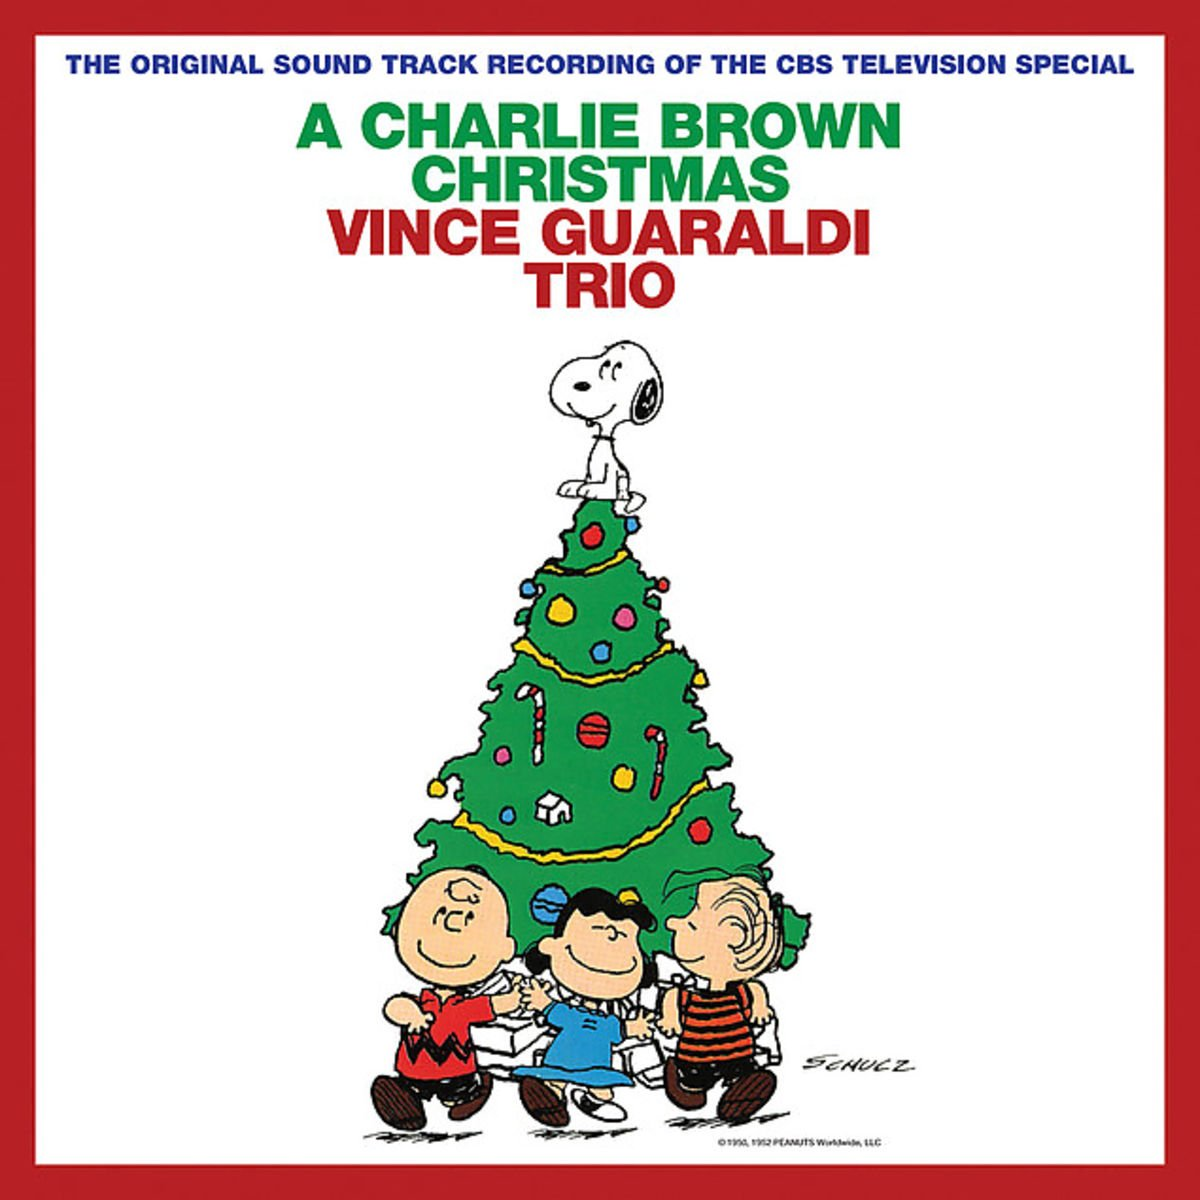 A Charlie Brown Christmas: Amazon.co.uk: Music